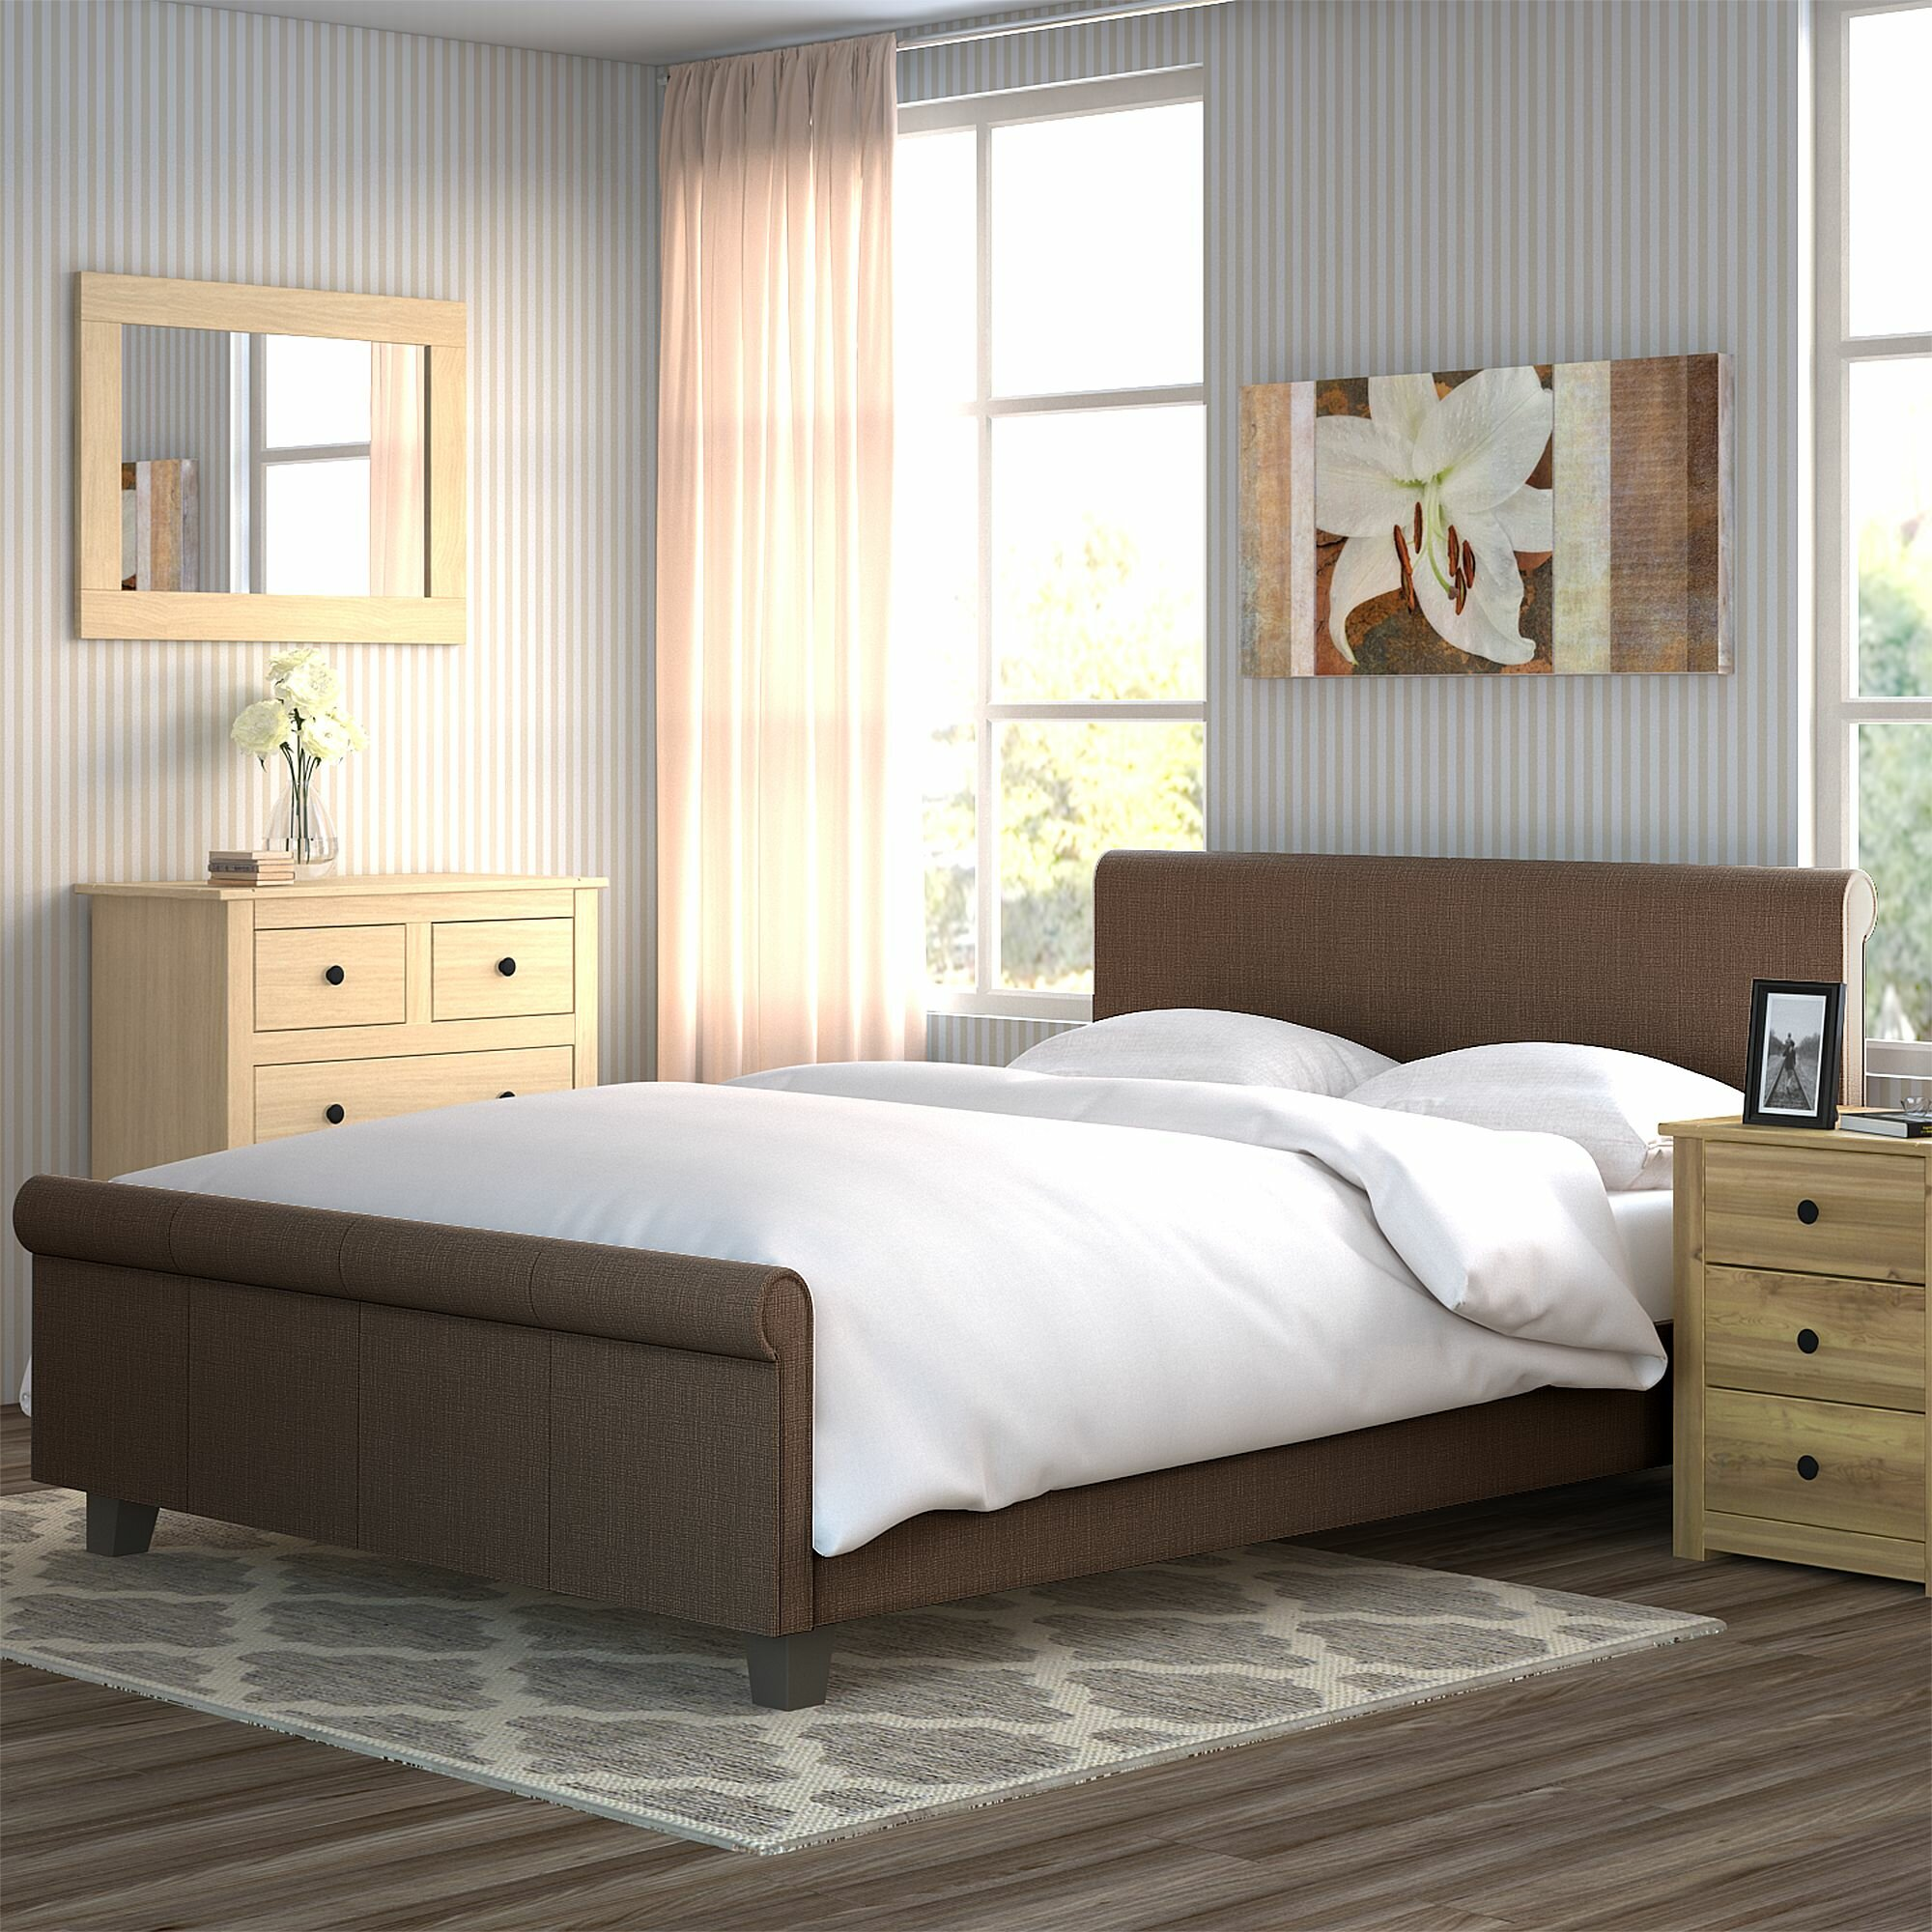 home sleigh furniture bed darby harrison co upholstered wayfair pdx